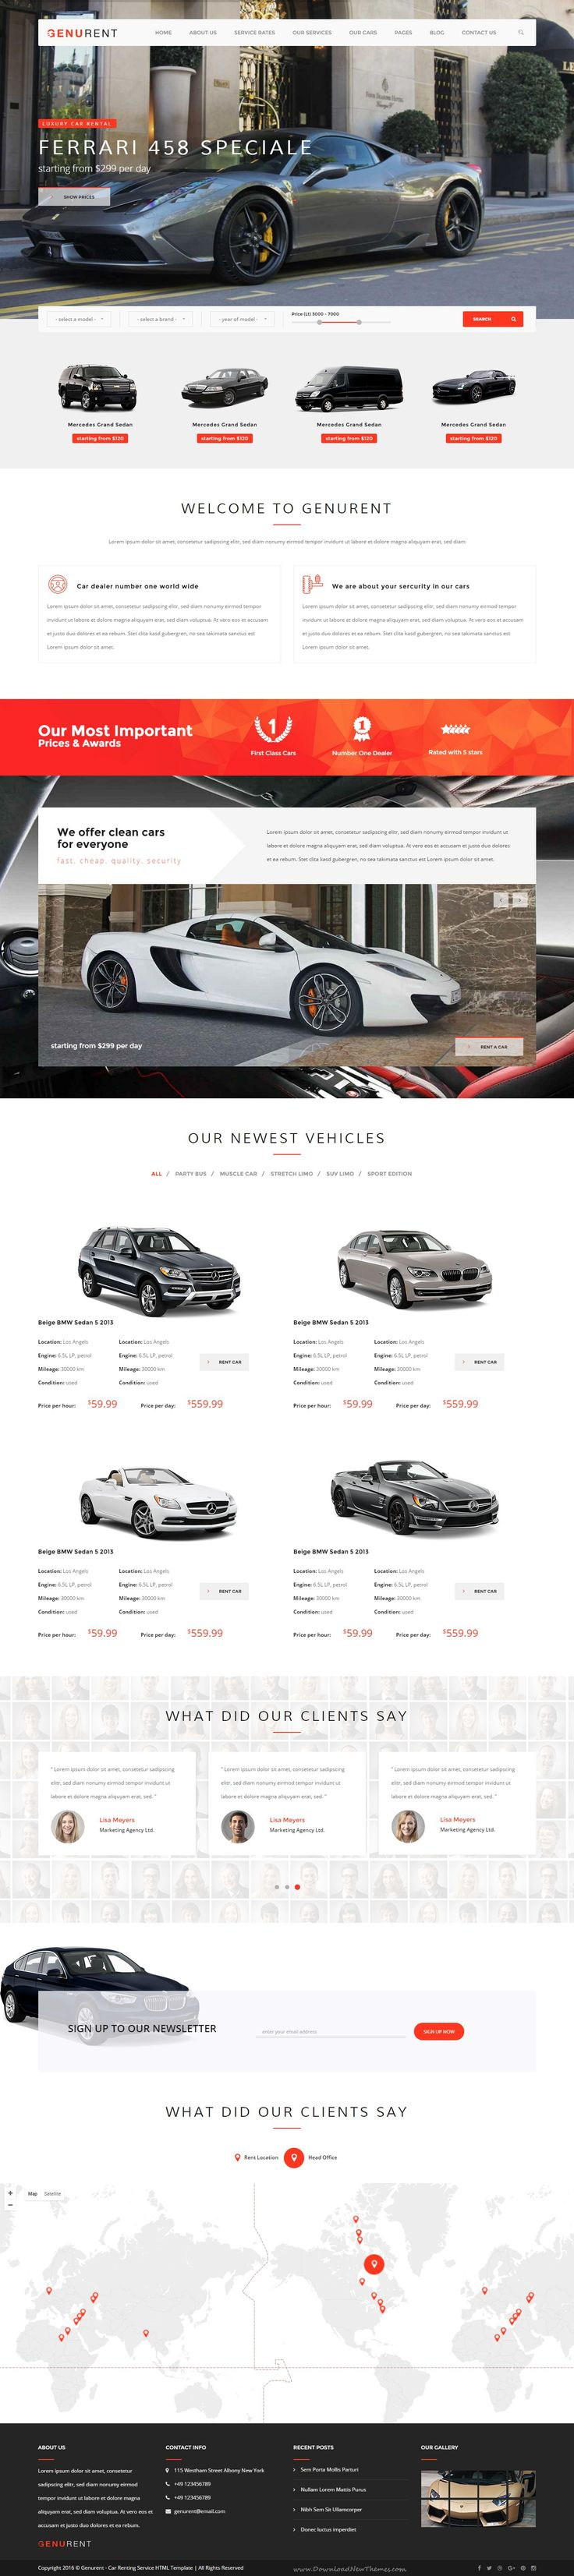 Genurent transport and car hire html template